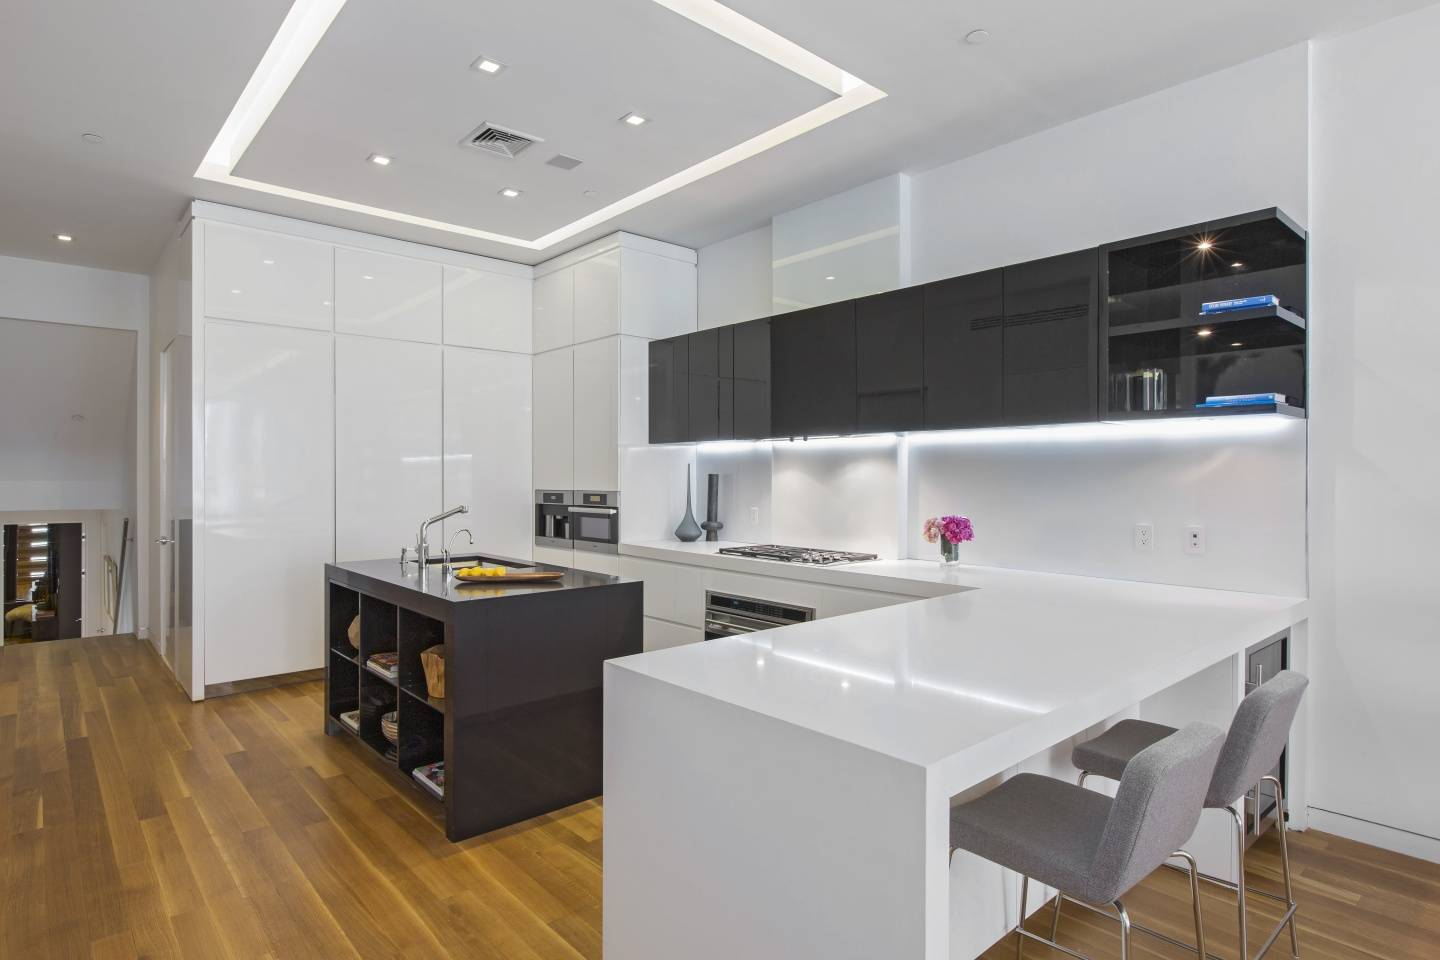 High-gloss cabinetry features built-in appliances.